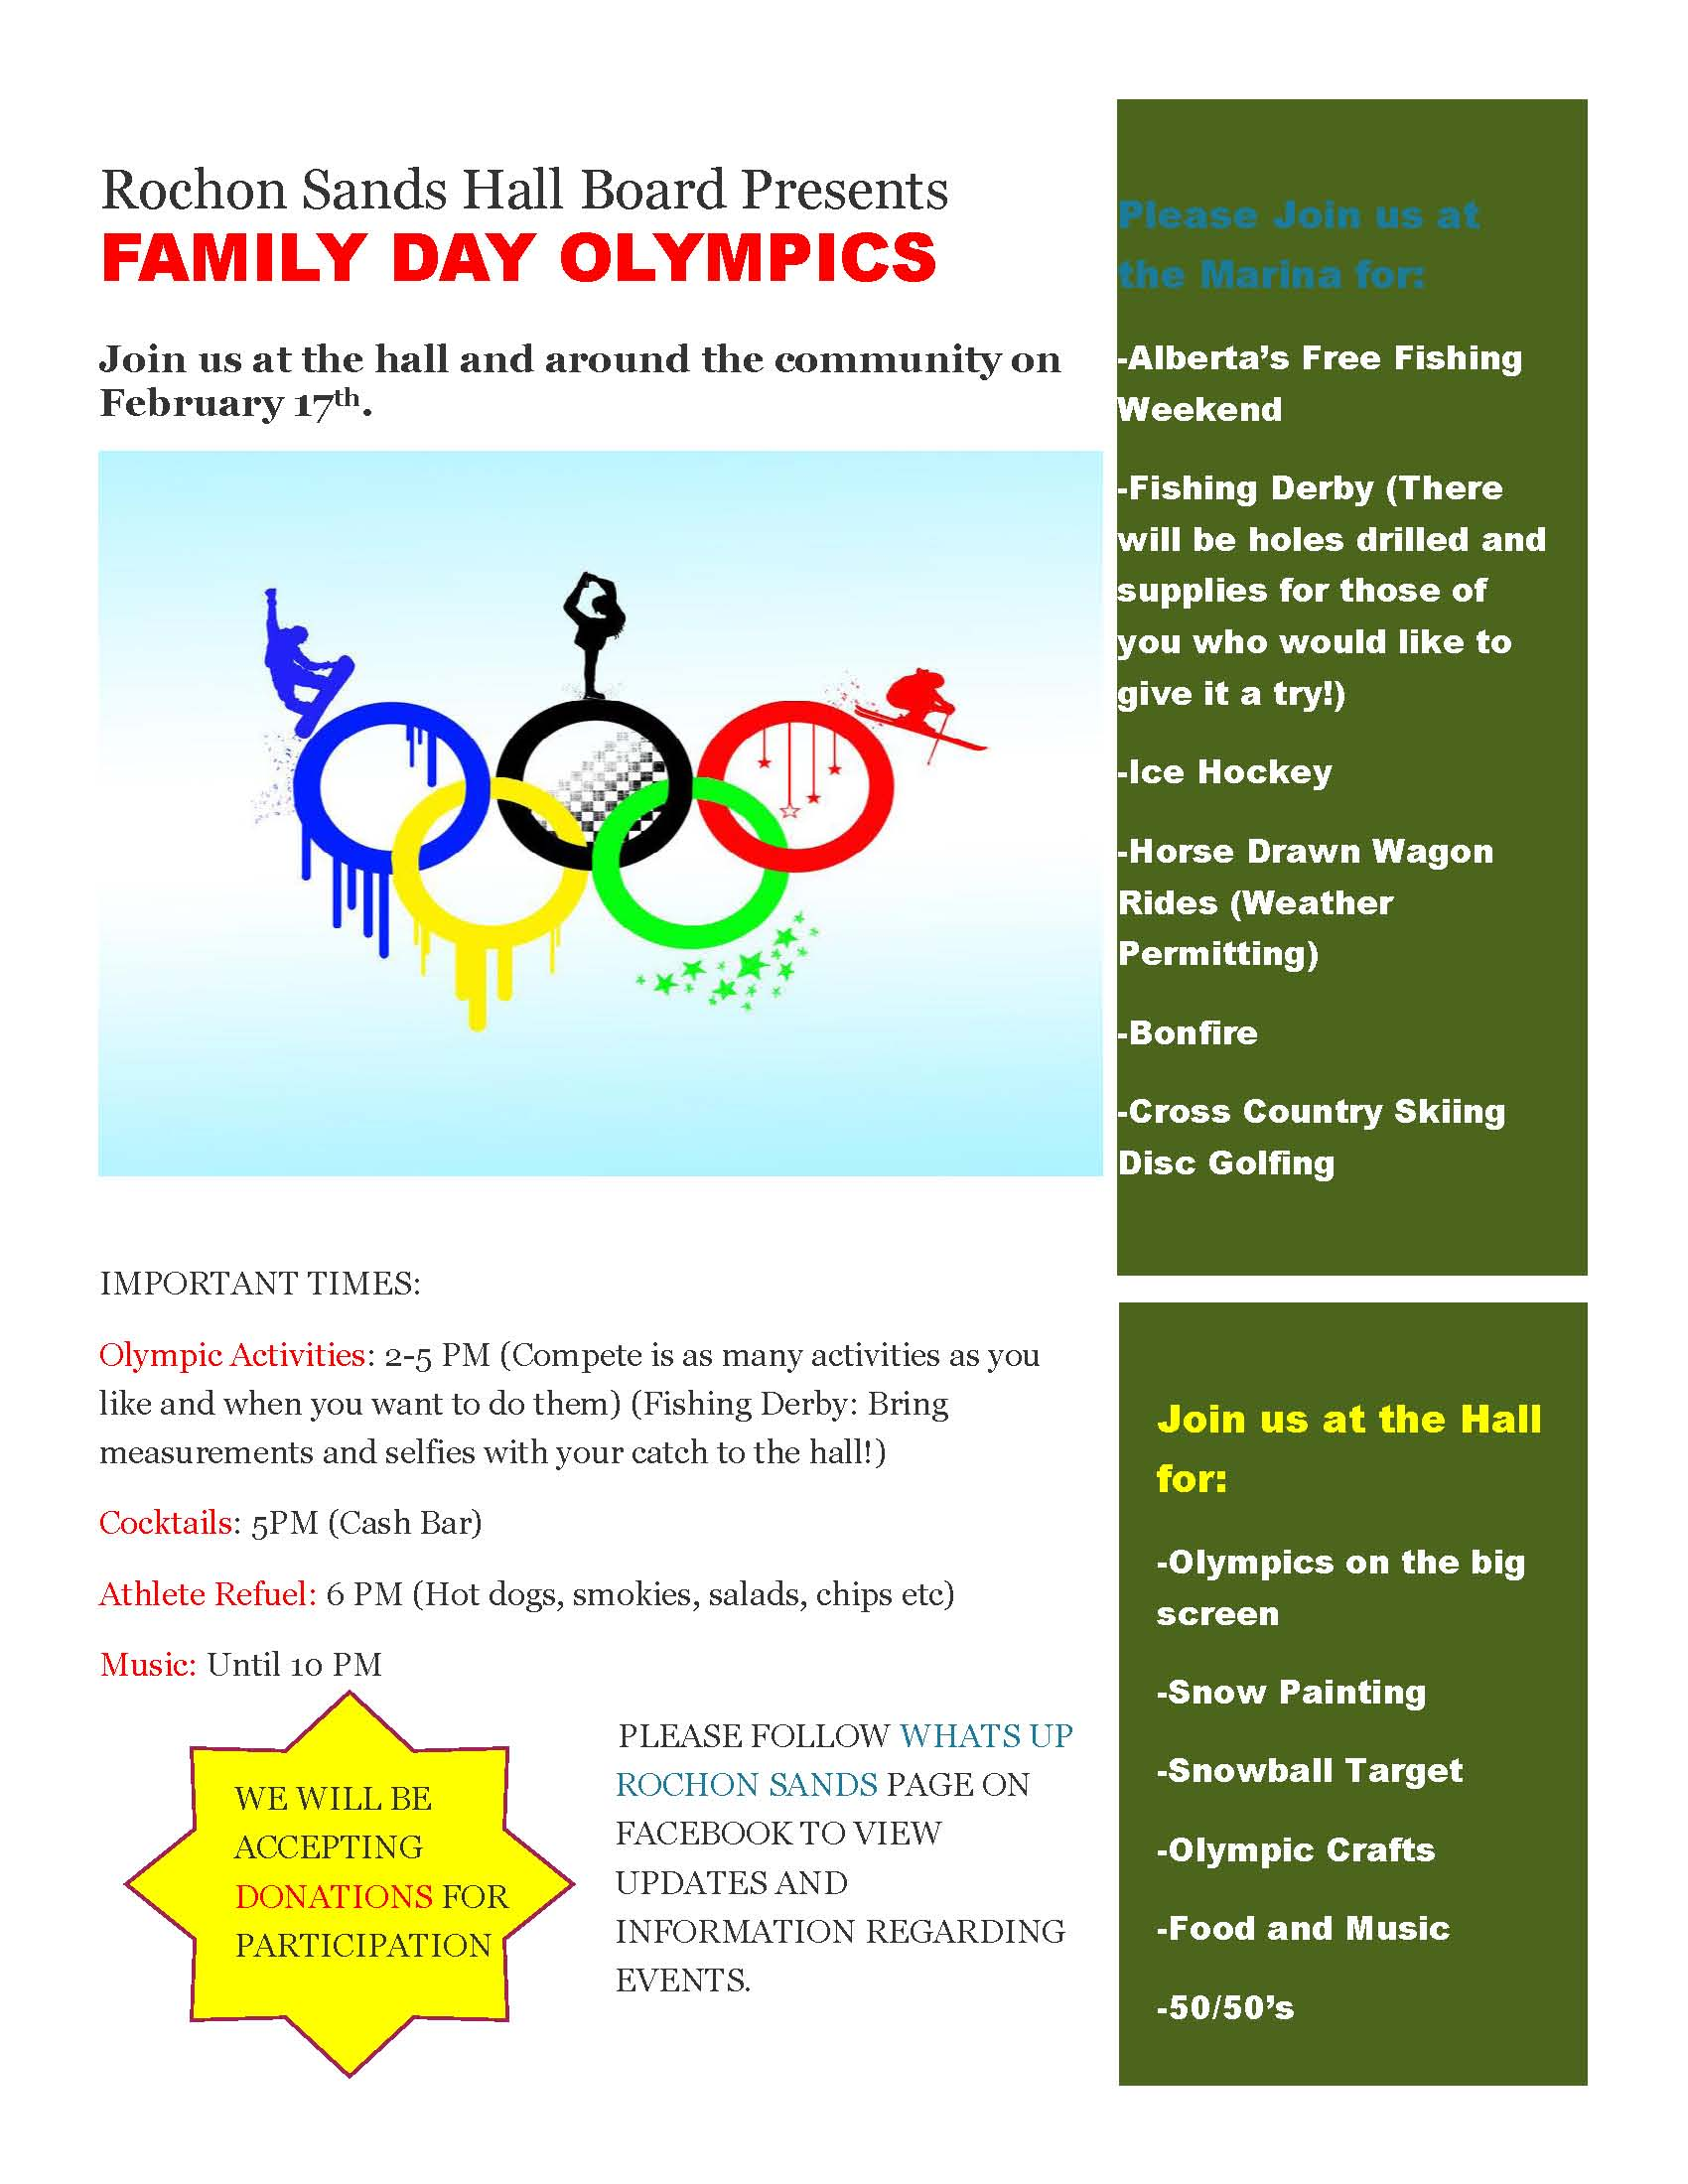 Rochon Sands Olympics - FamilyDay_Page_1